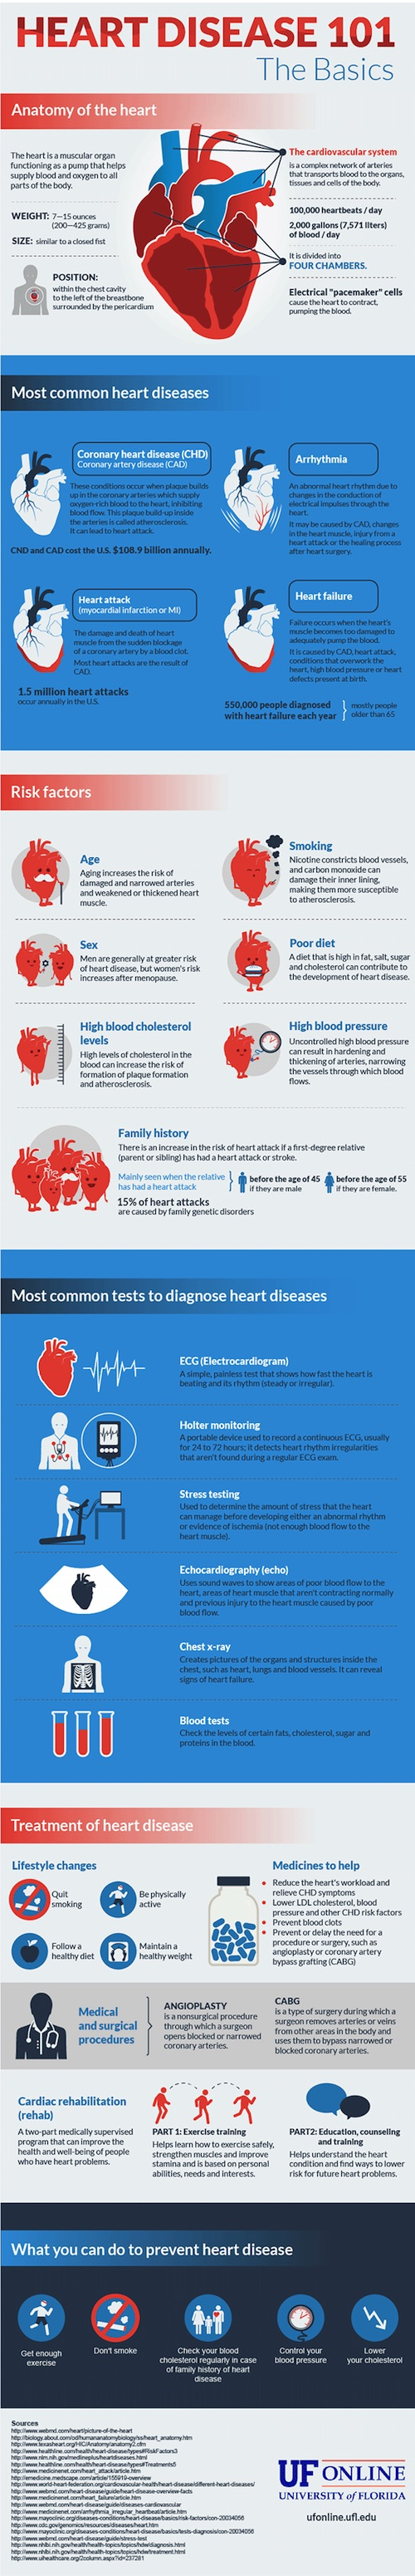 heart-disease-101-the-basics